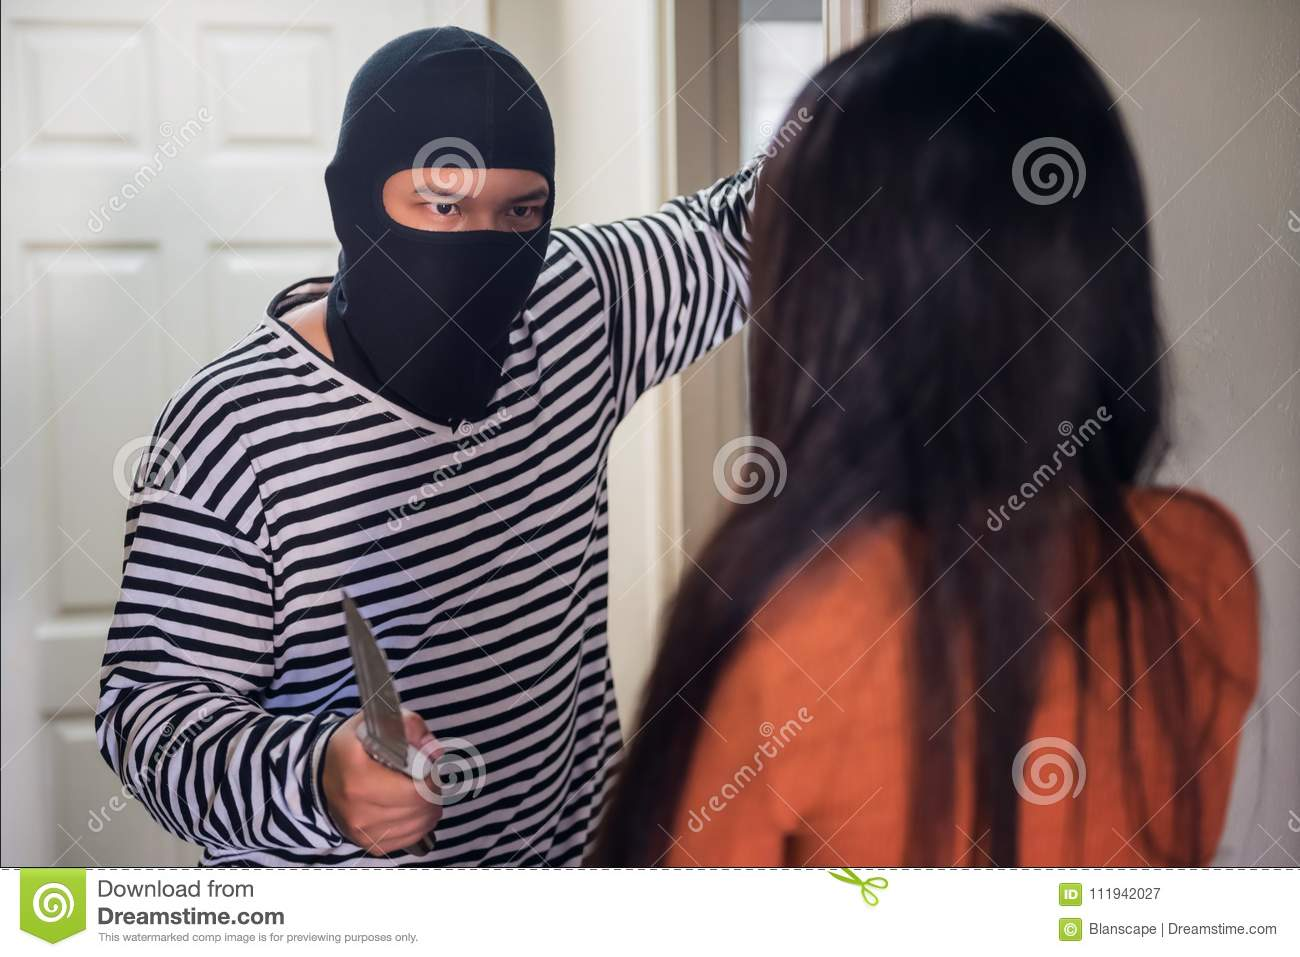 male thief attack victim girl in room